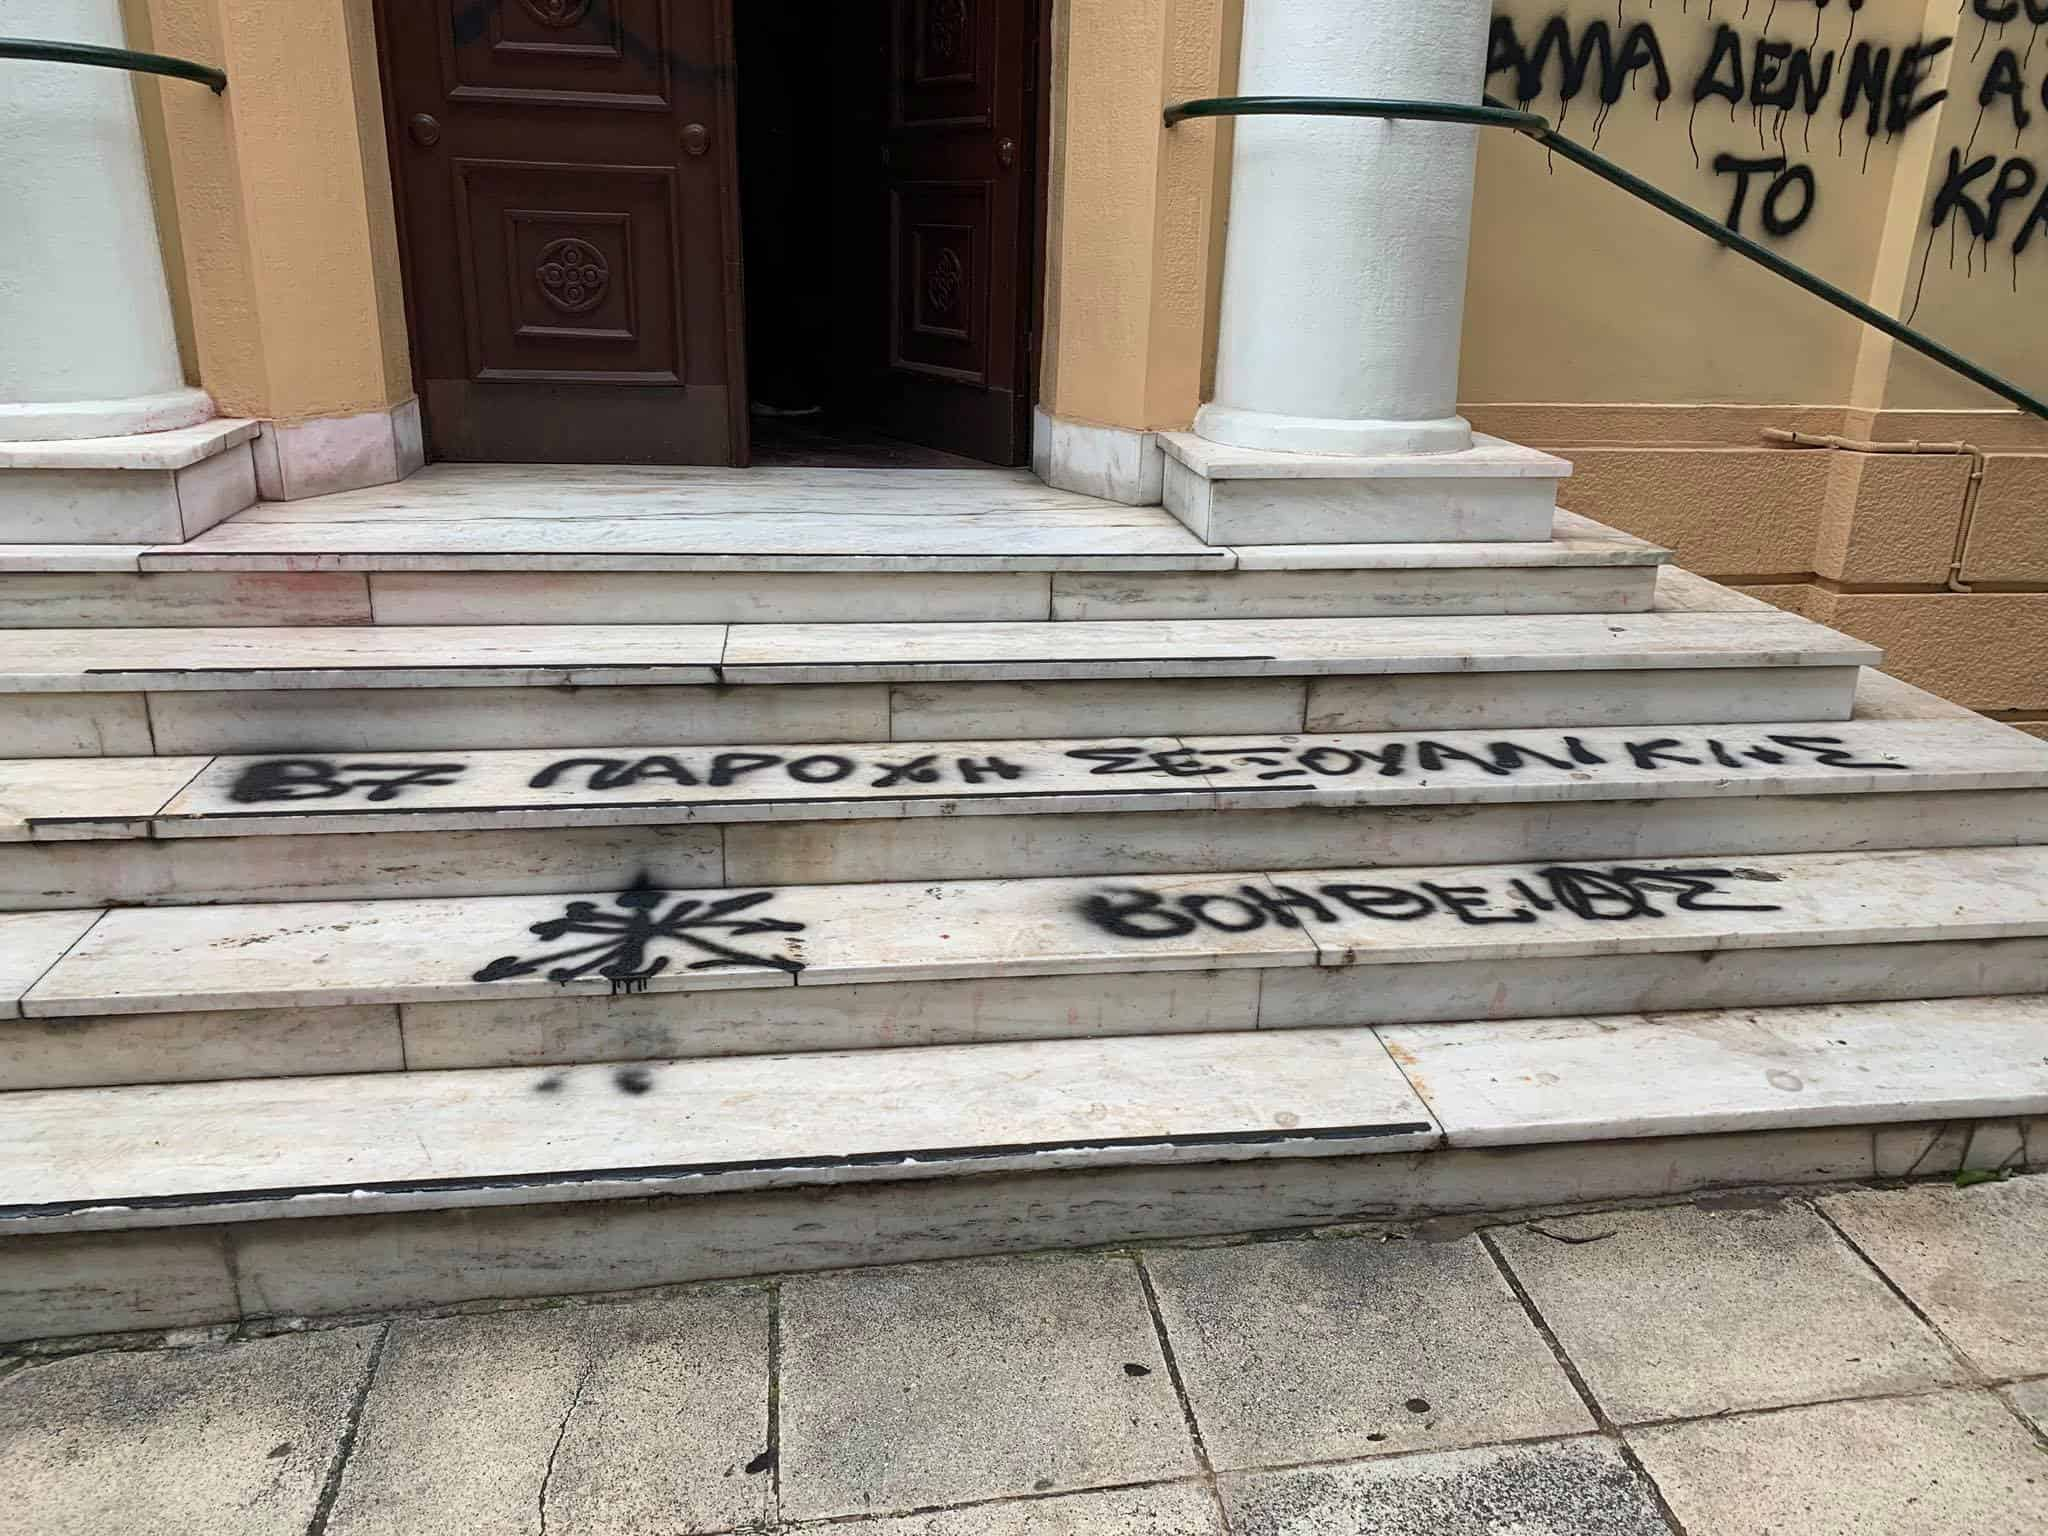 Anarchists vandalise church in Athens with vulgar slogans (VIDEO) 4